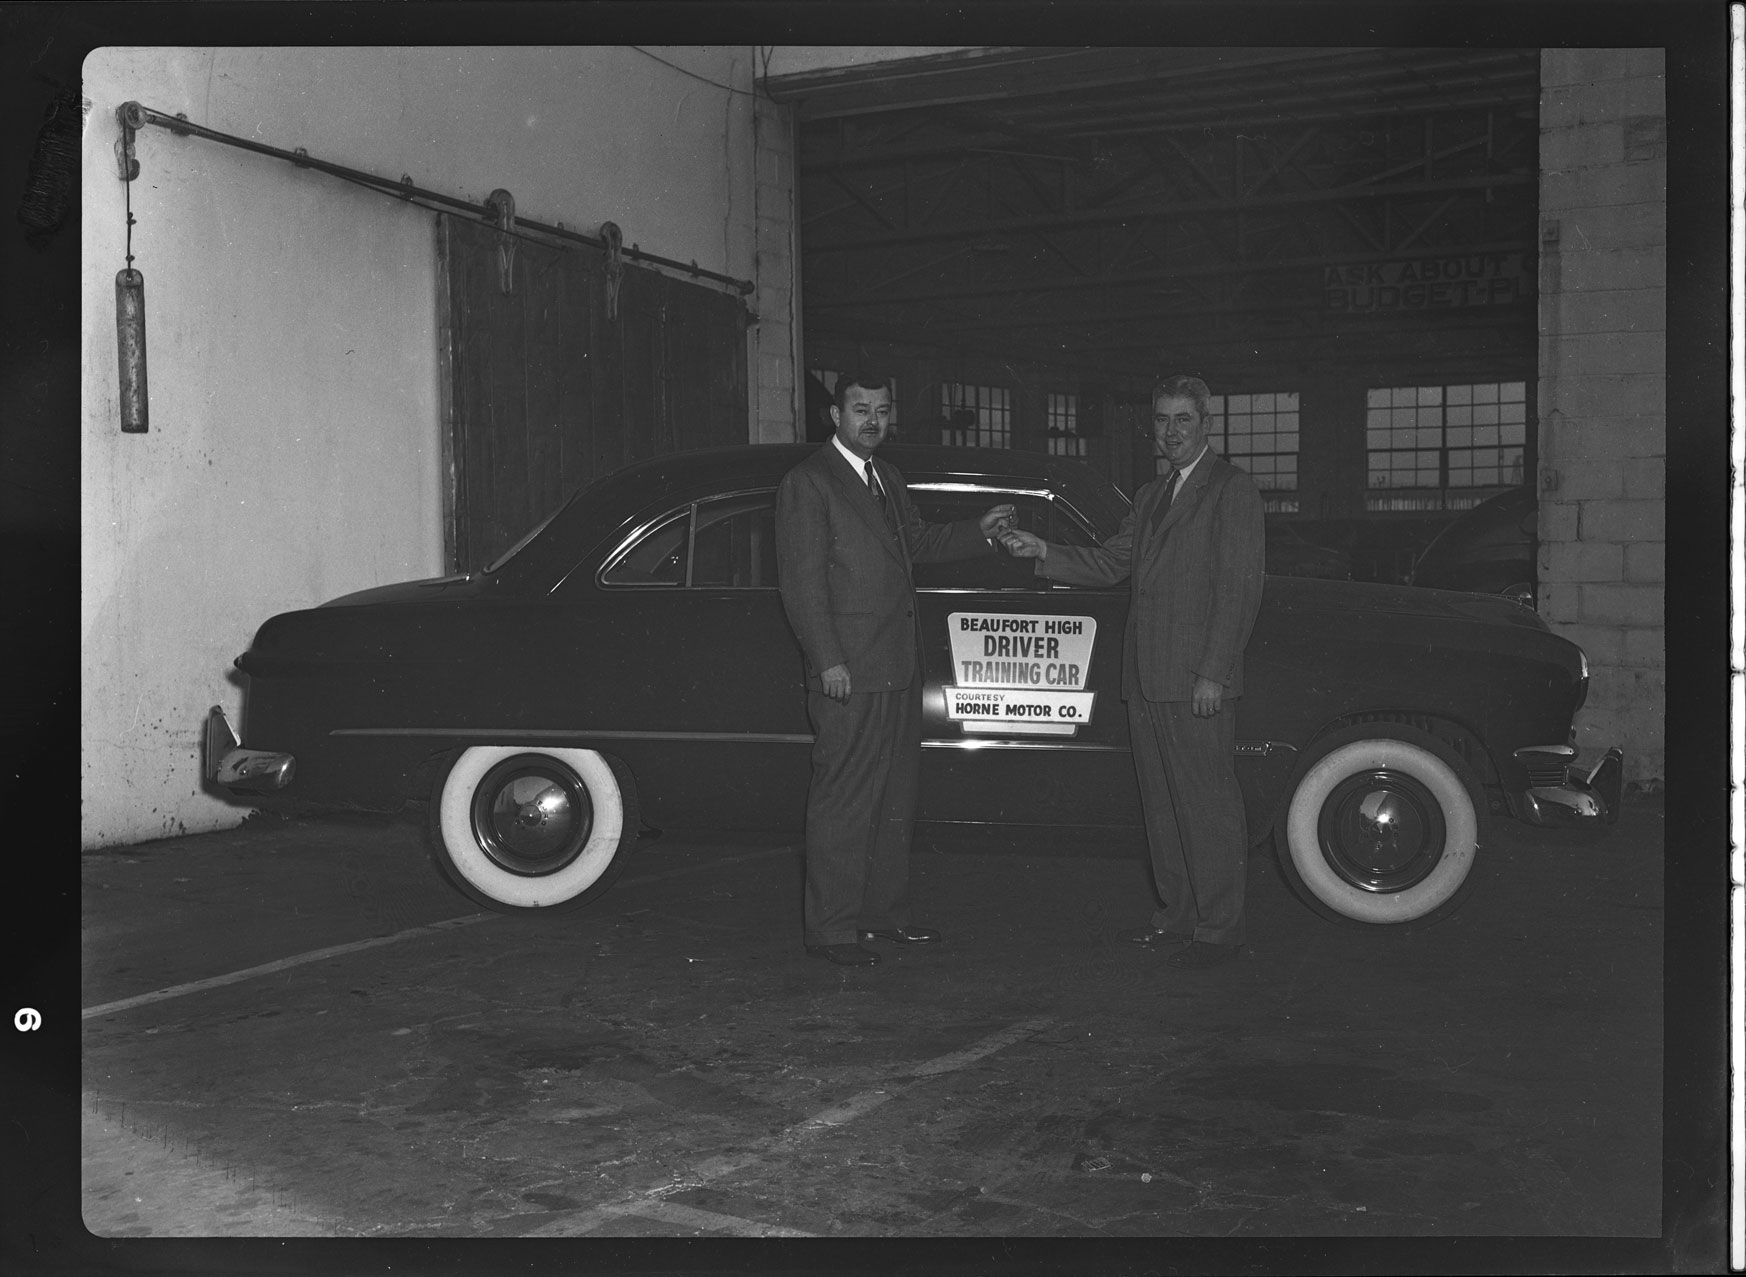 Beaufort High Driver Training Car courtesy of Horne Motor Company